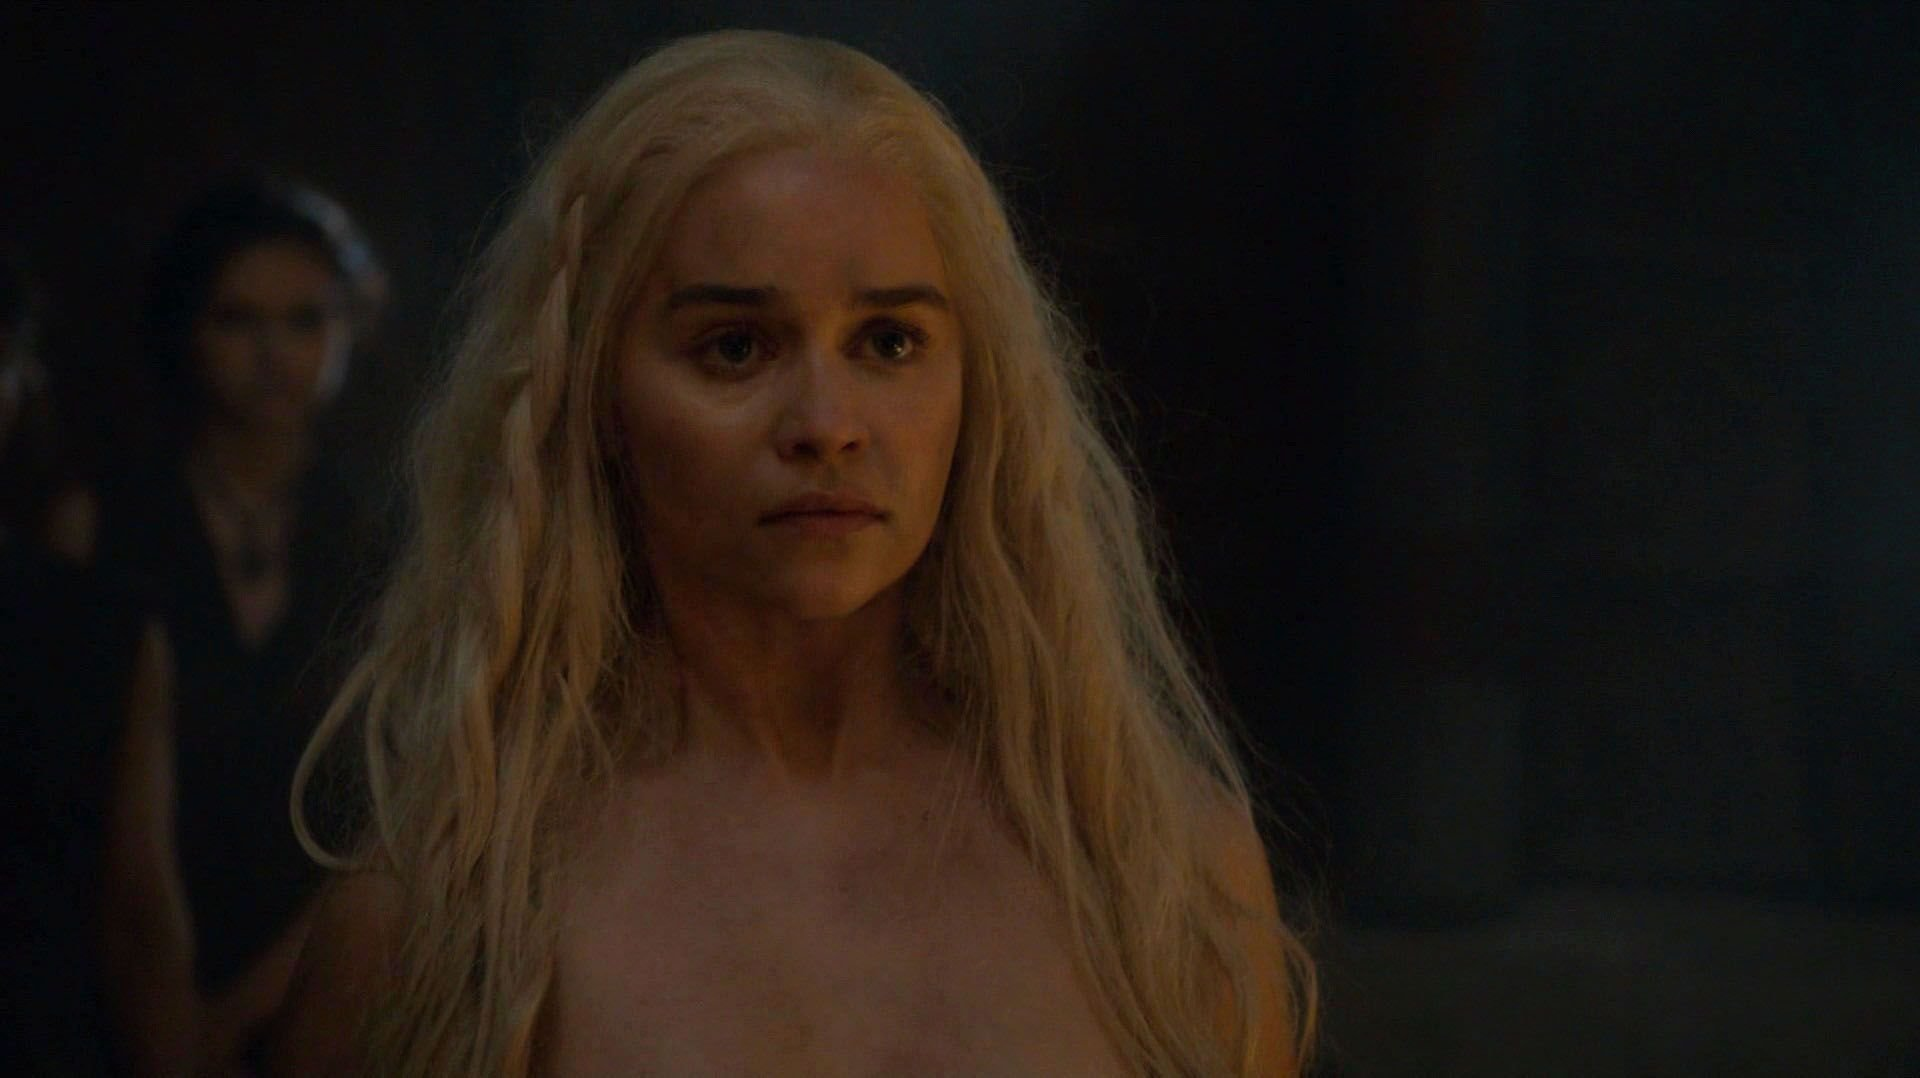 image Emilia clarke nude on stage